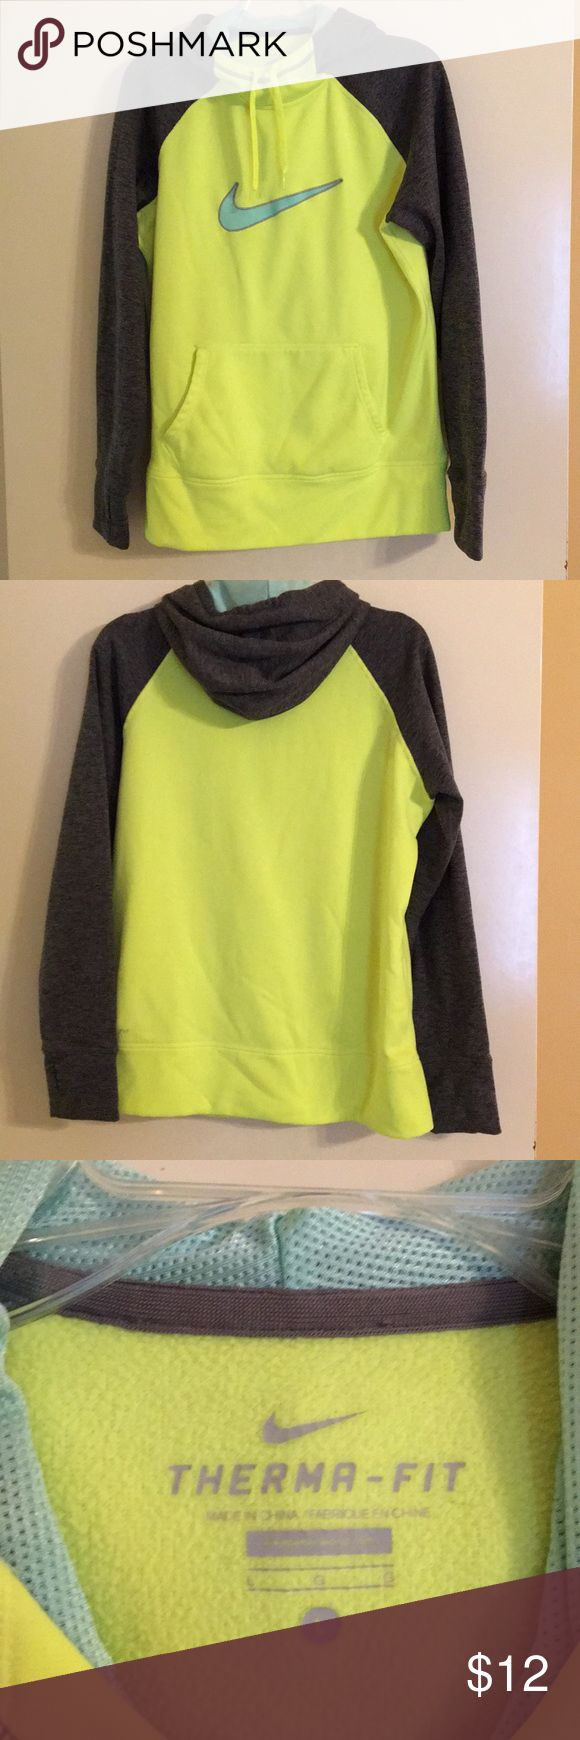 Nike Therma-Fit Women's Hoodie Large Nike Therma-Fit Hoodie.  Color is neon yellow with heather grey sleeves and aqua blue swoosh. Women's large.  There are a few small stains that I tried to show in the last pics.  They are pretty faint and not too noticeable.  Great condition other than that! Nike Tops Sweatshirts & Hoodies